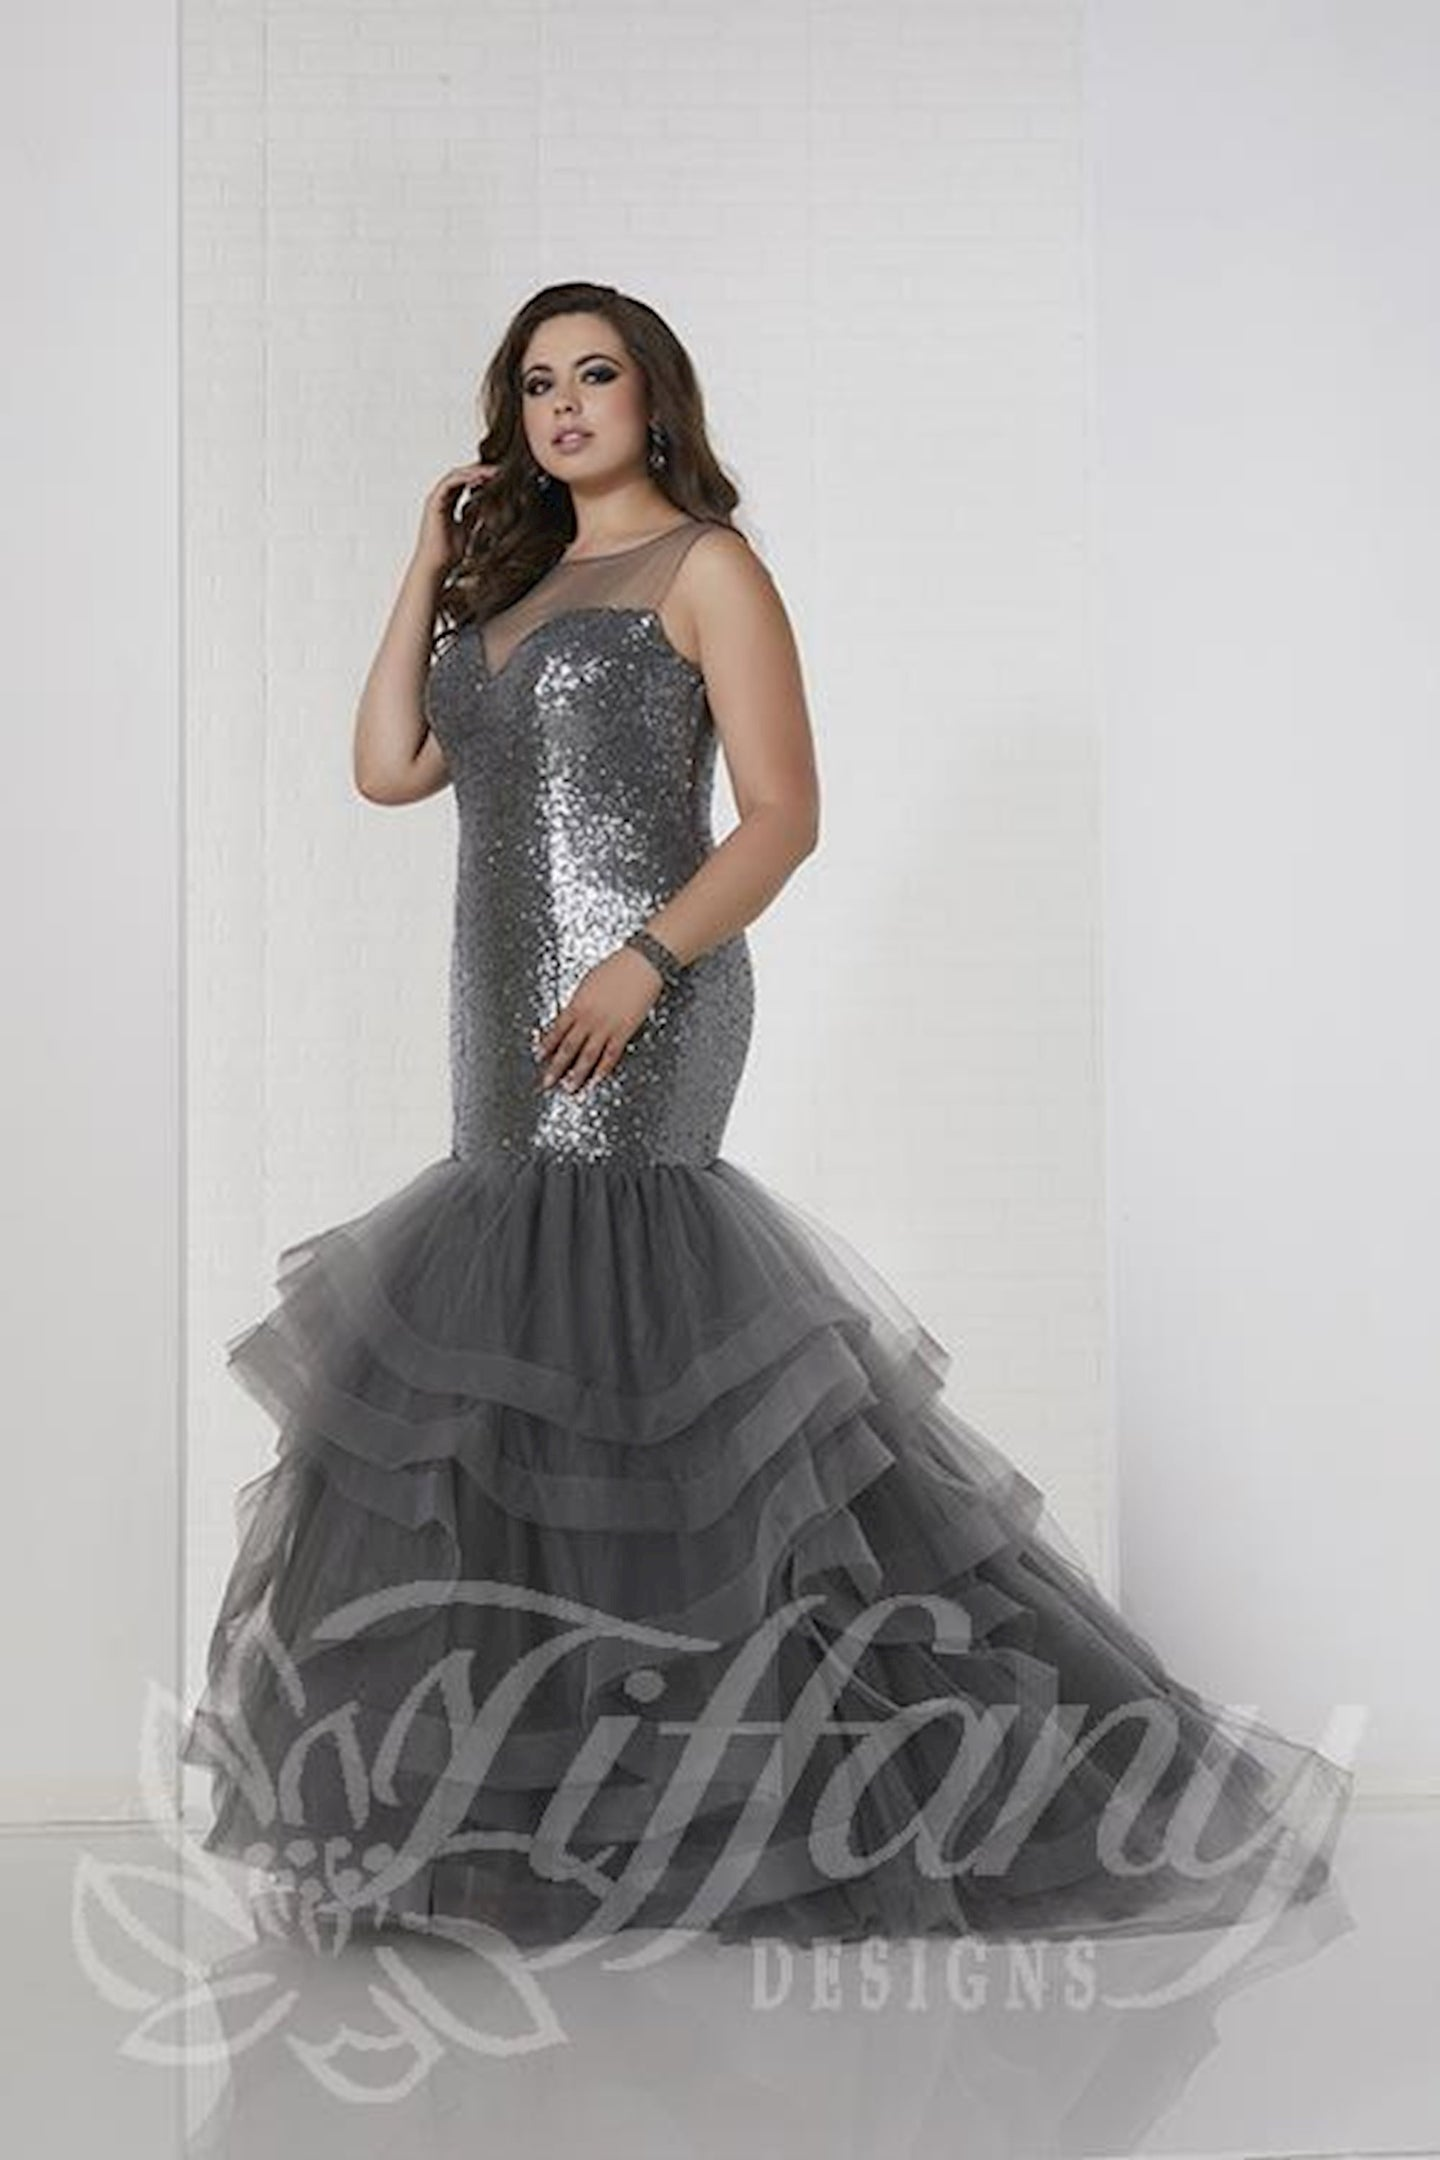 Tiffany Designs Sequin Mermaid Dress 16320 Charcoal